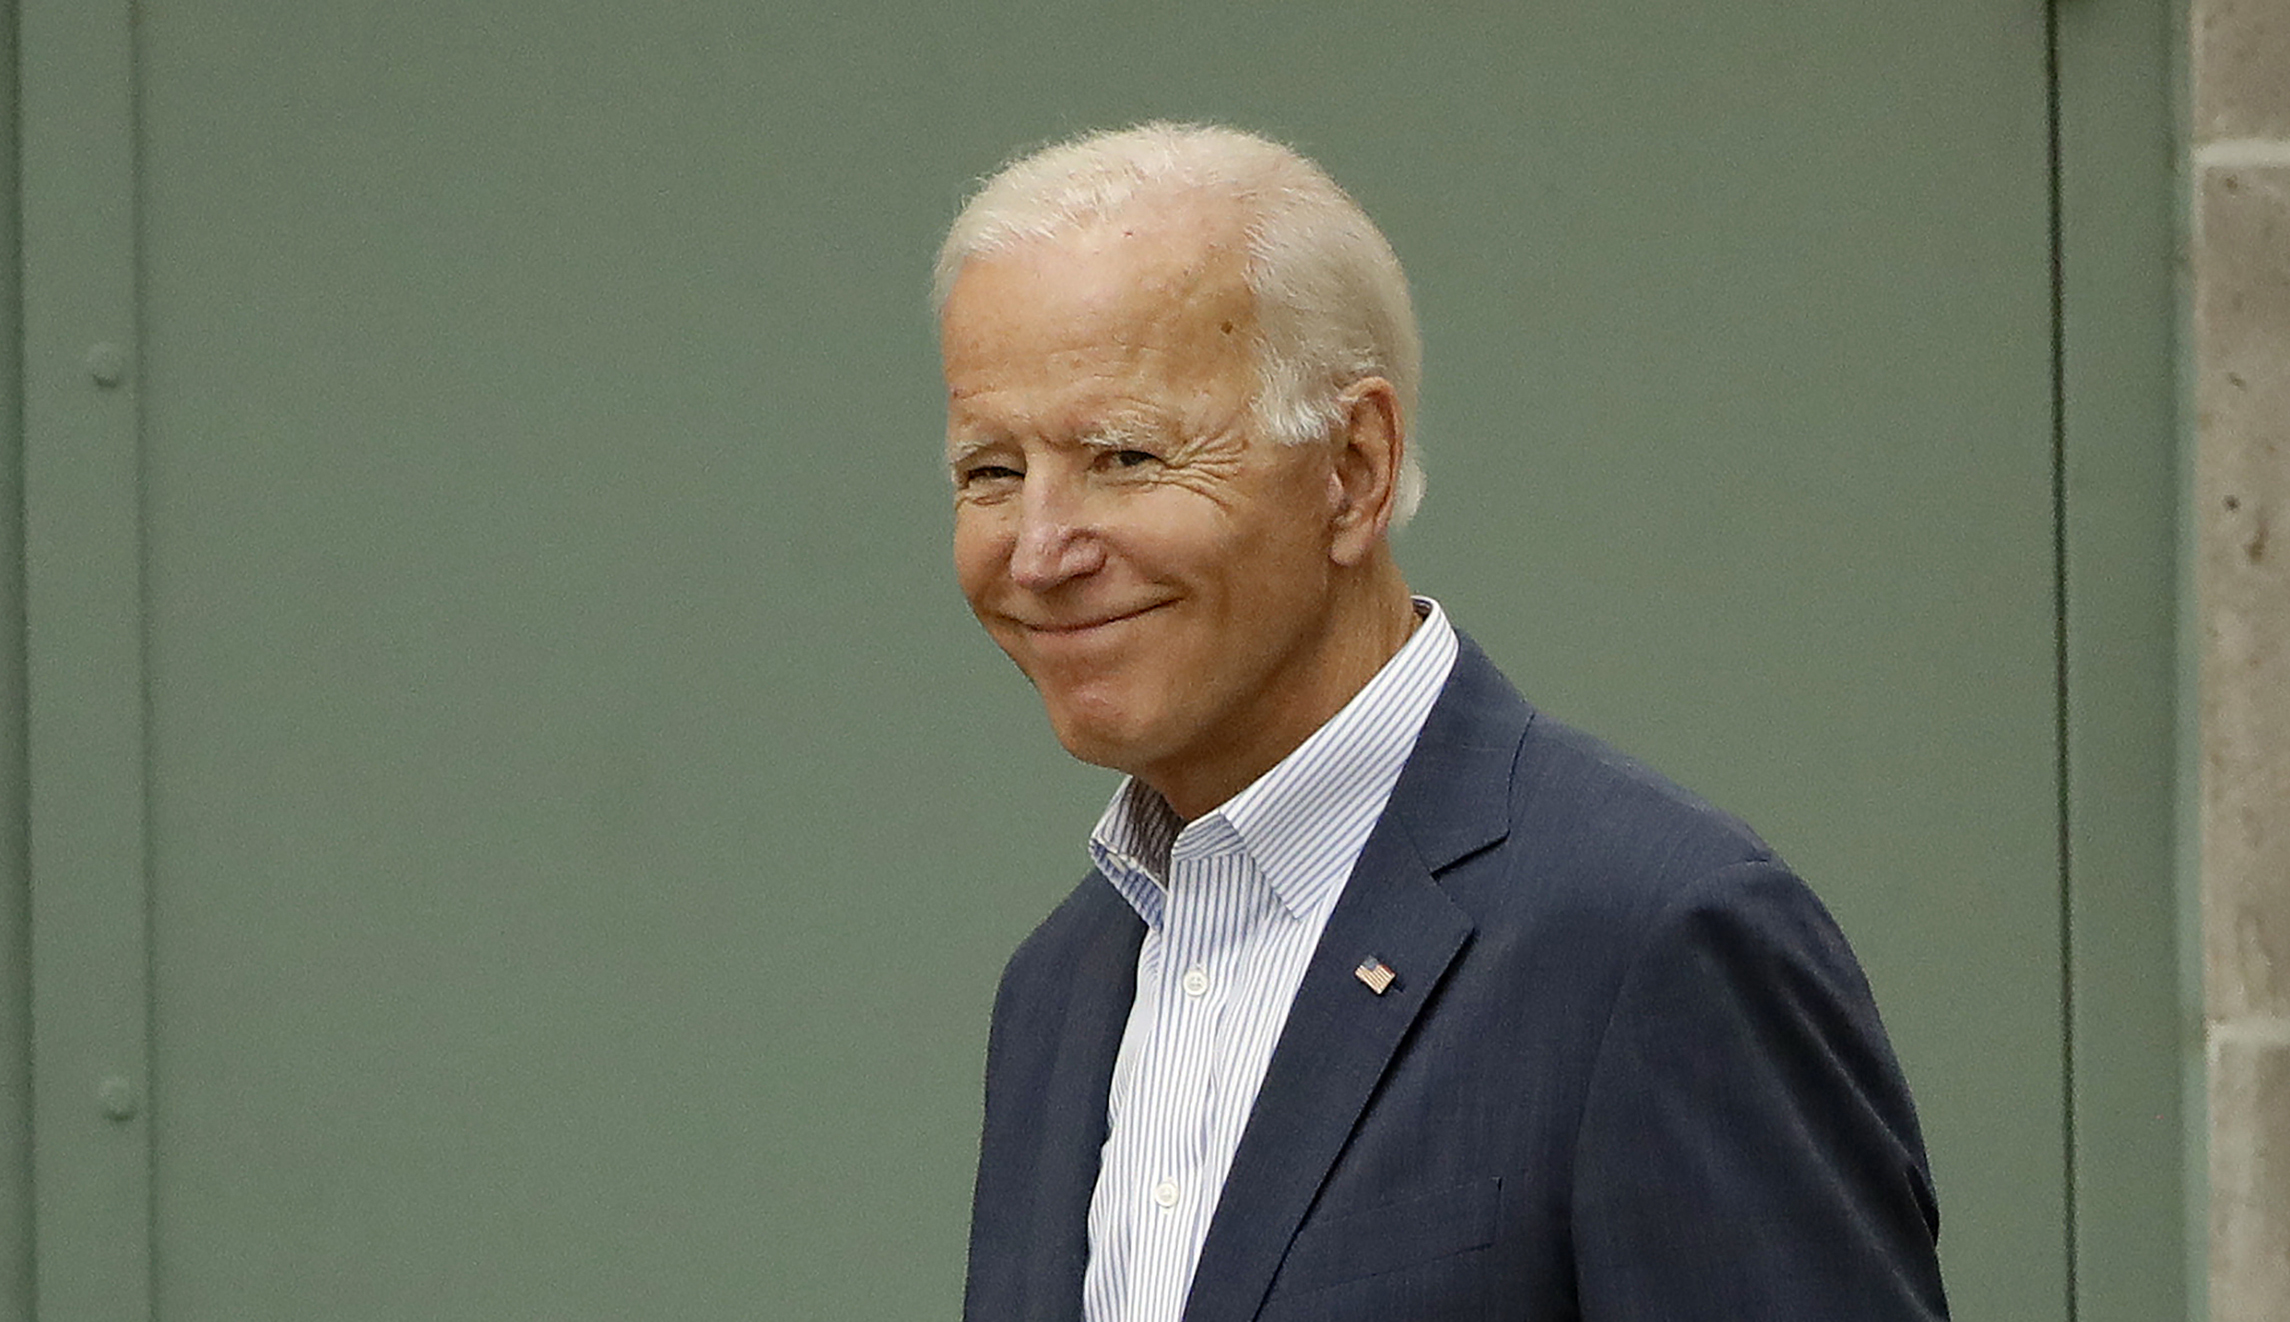 After liberal backlash, White House says Biden will increase refugee cap